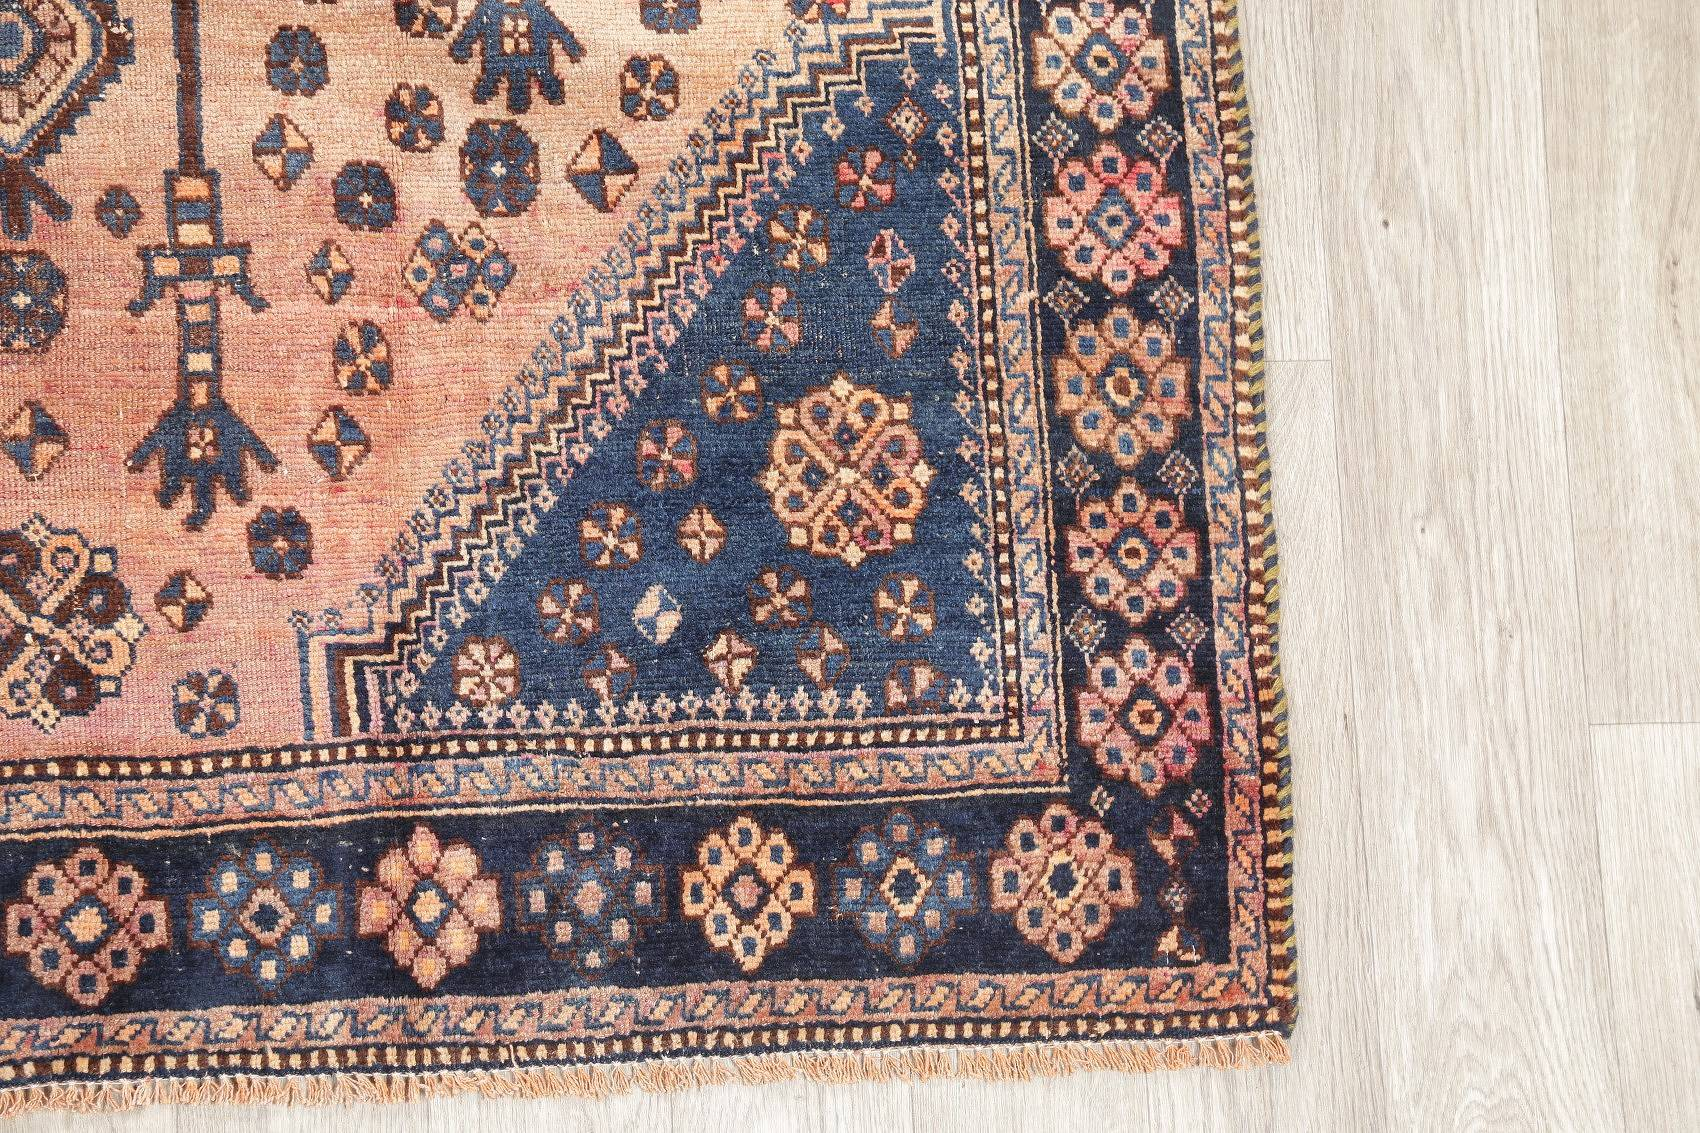 Antique Brown Tribal Afshar Persian Hand-Kotted 5x7 Wool Area Rug